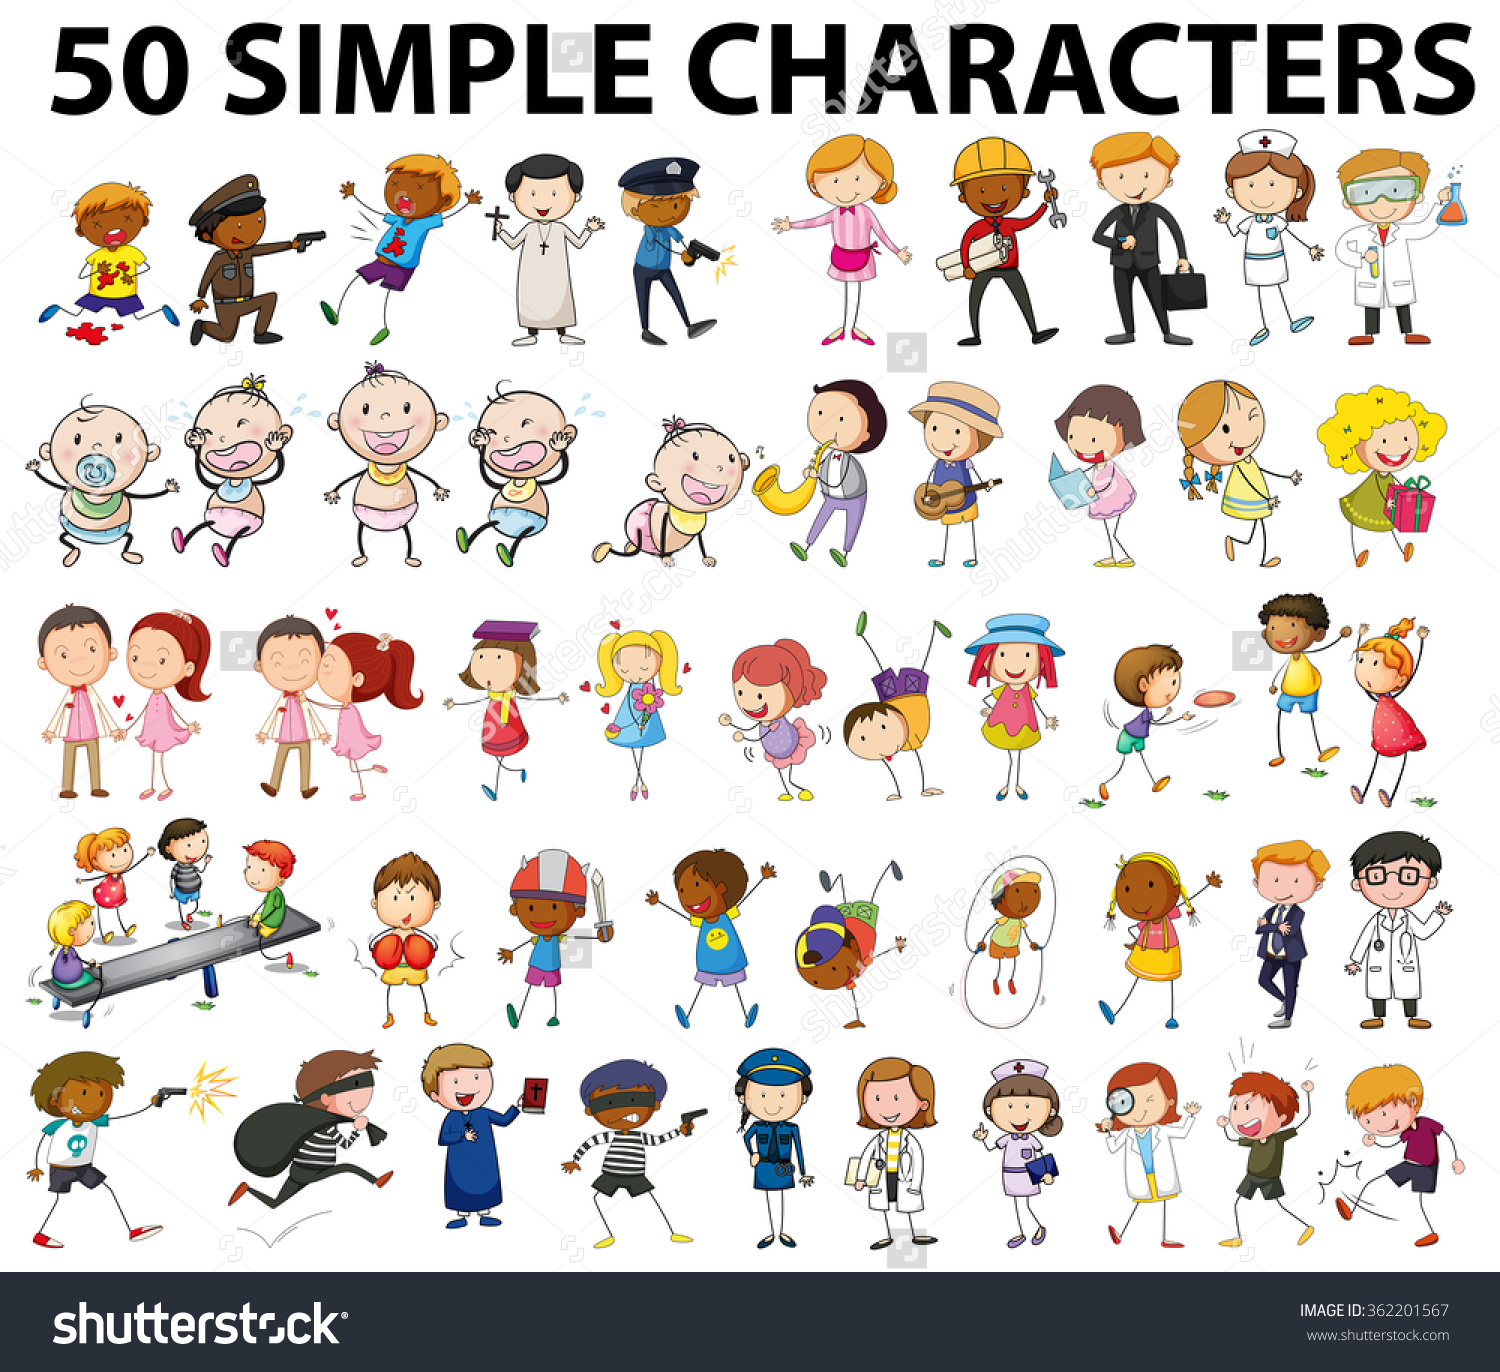 Fifty Simple Characters Doing Different Things Stock Vector.